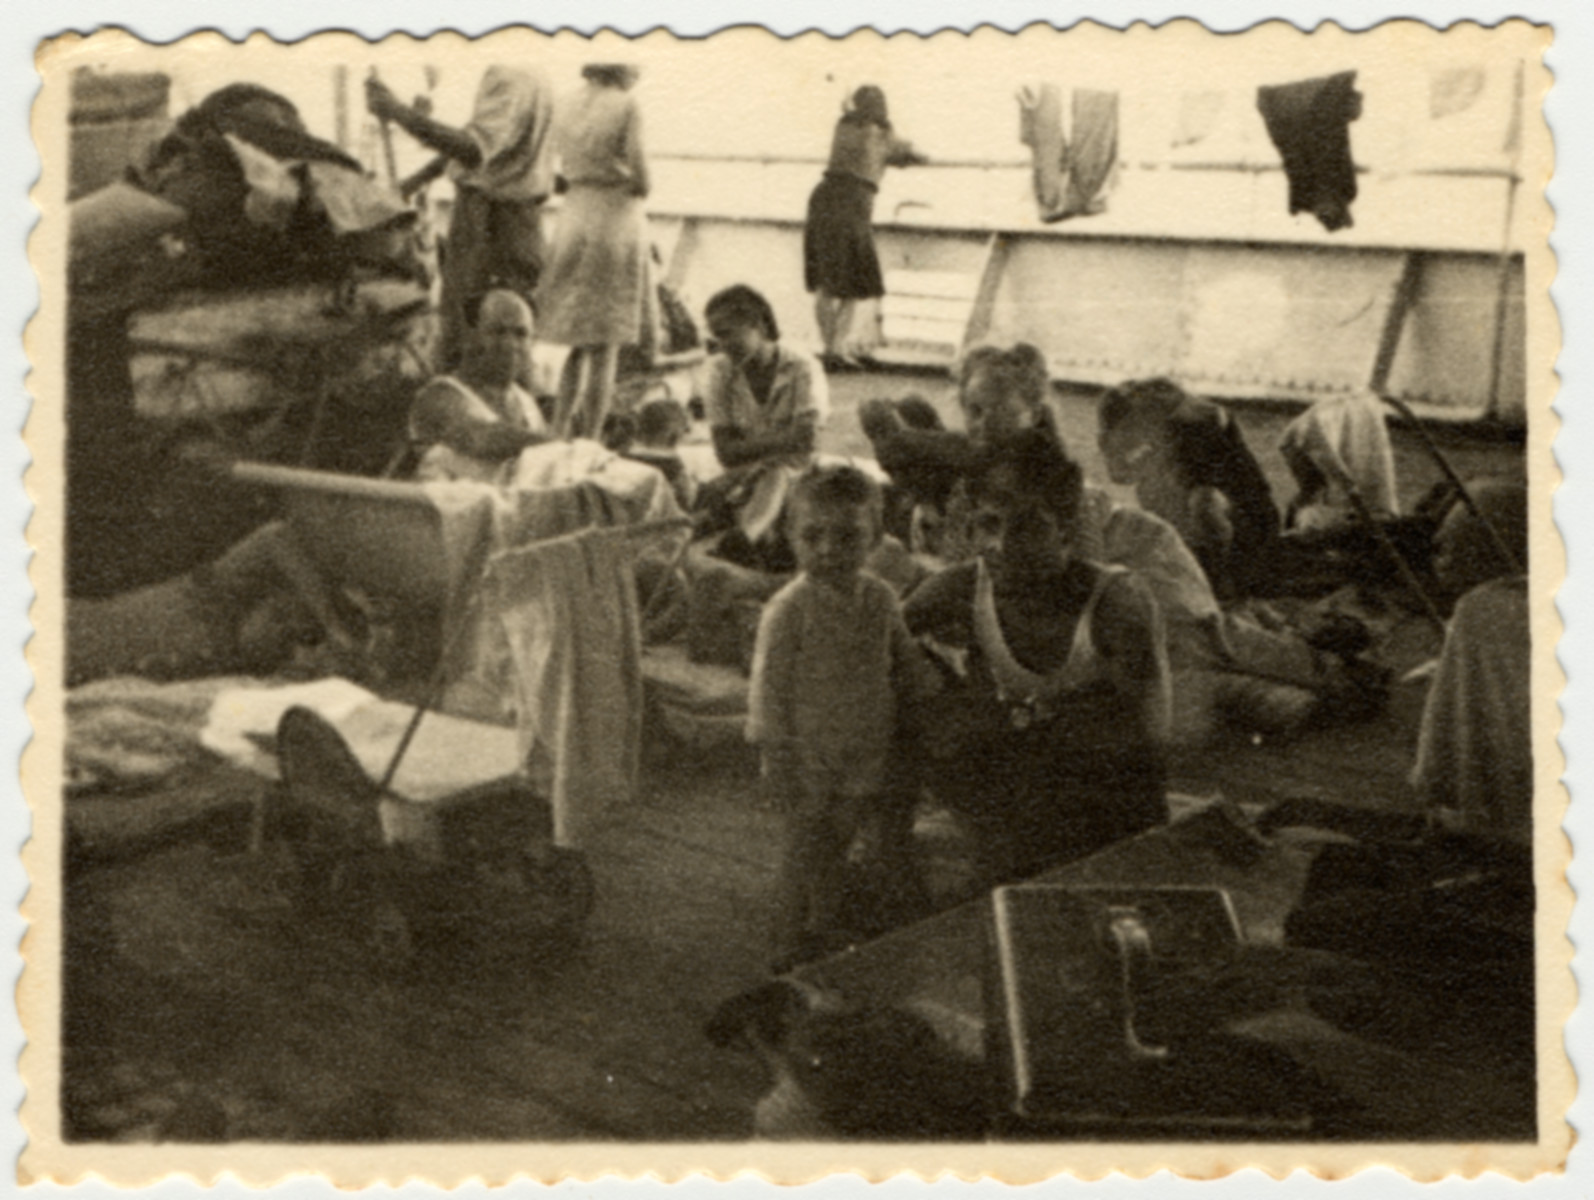 Immigrants relax on the deck of the Caserta while en route to Palestine.